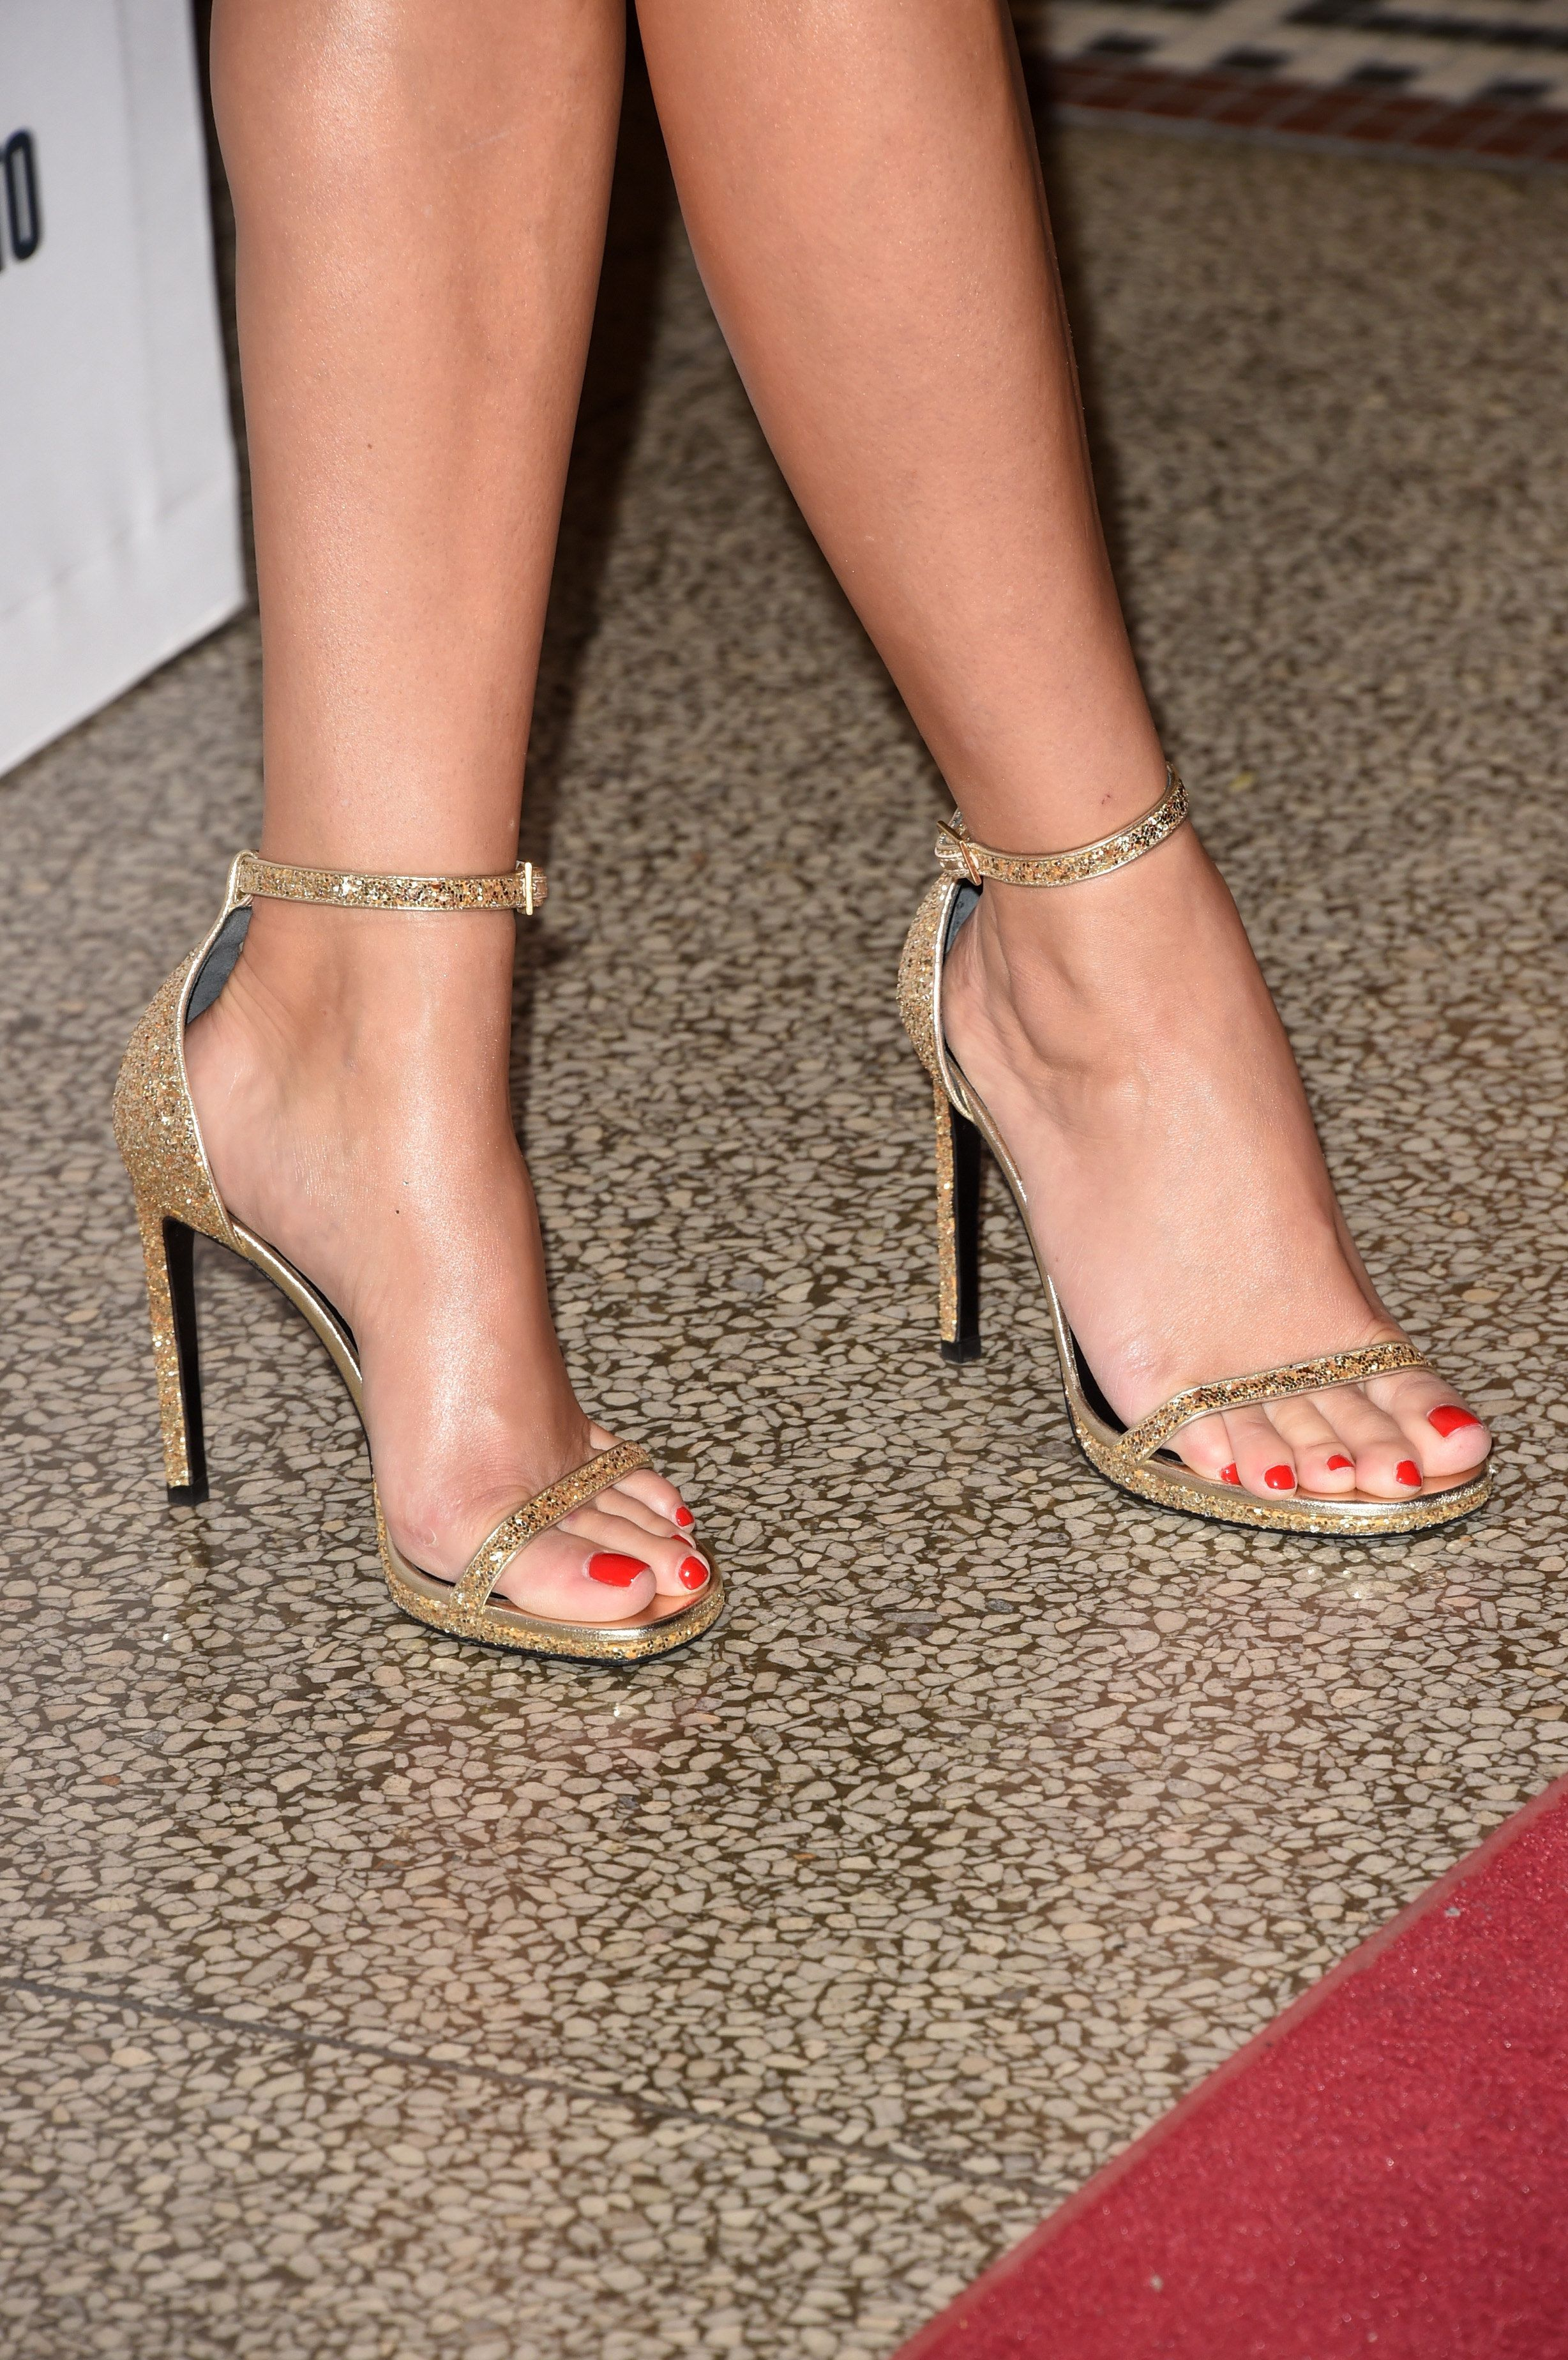 Reese Witherspoon (shoe detail) attends 'The Good Lie' premiere during the  2014 Toronto International Film Festival at The Elgin on September 2014 in  ...